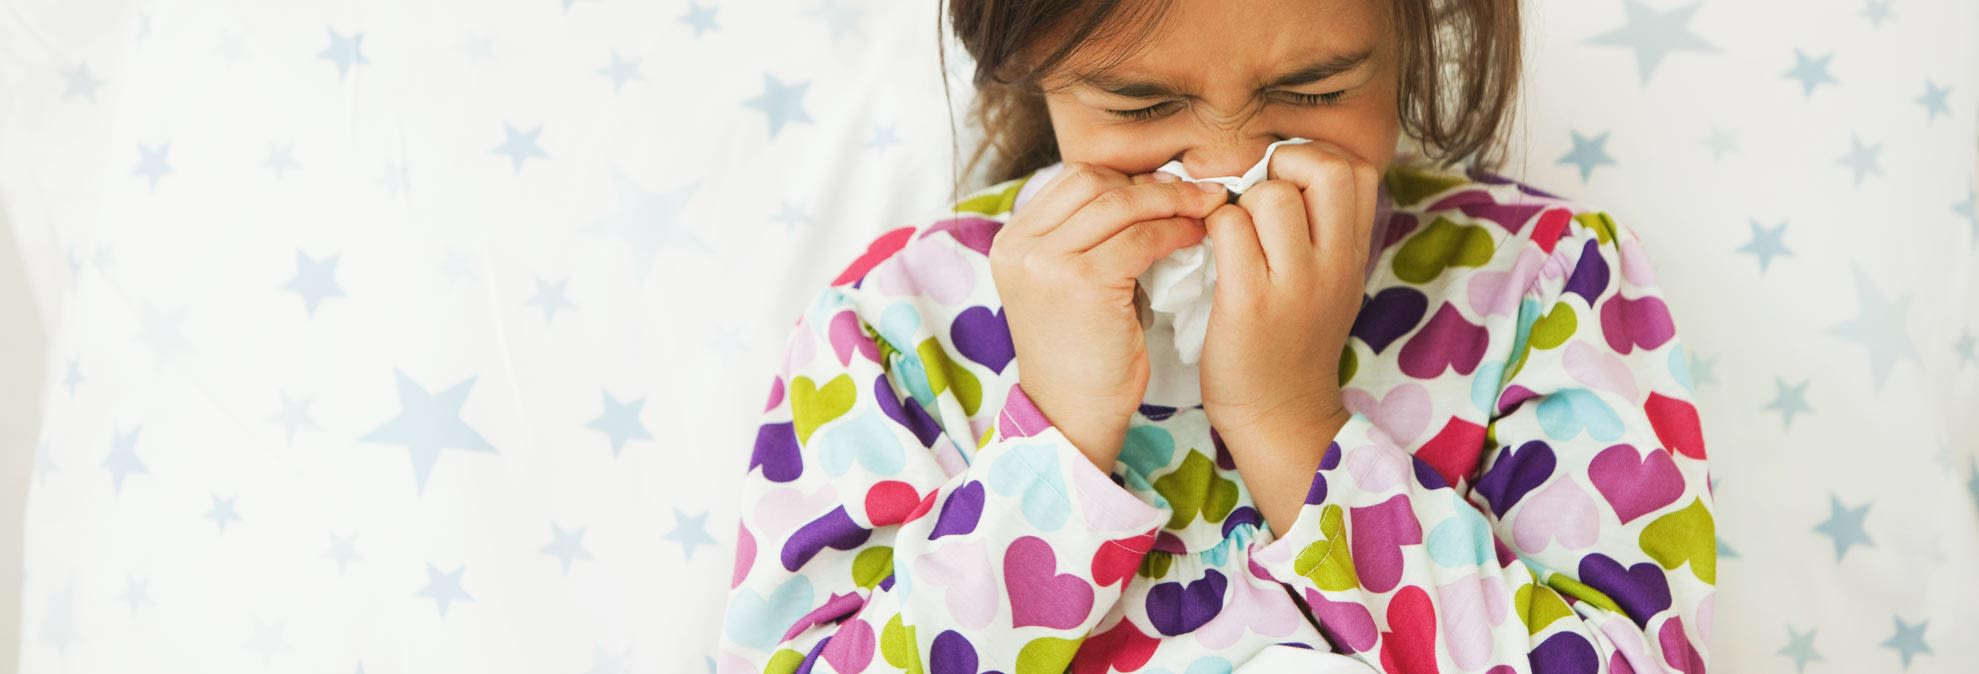 Kids Coughs And Colds What Works And What To Skip